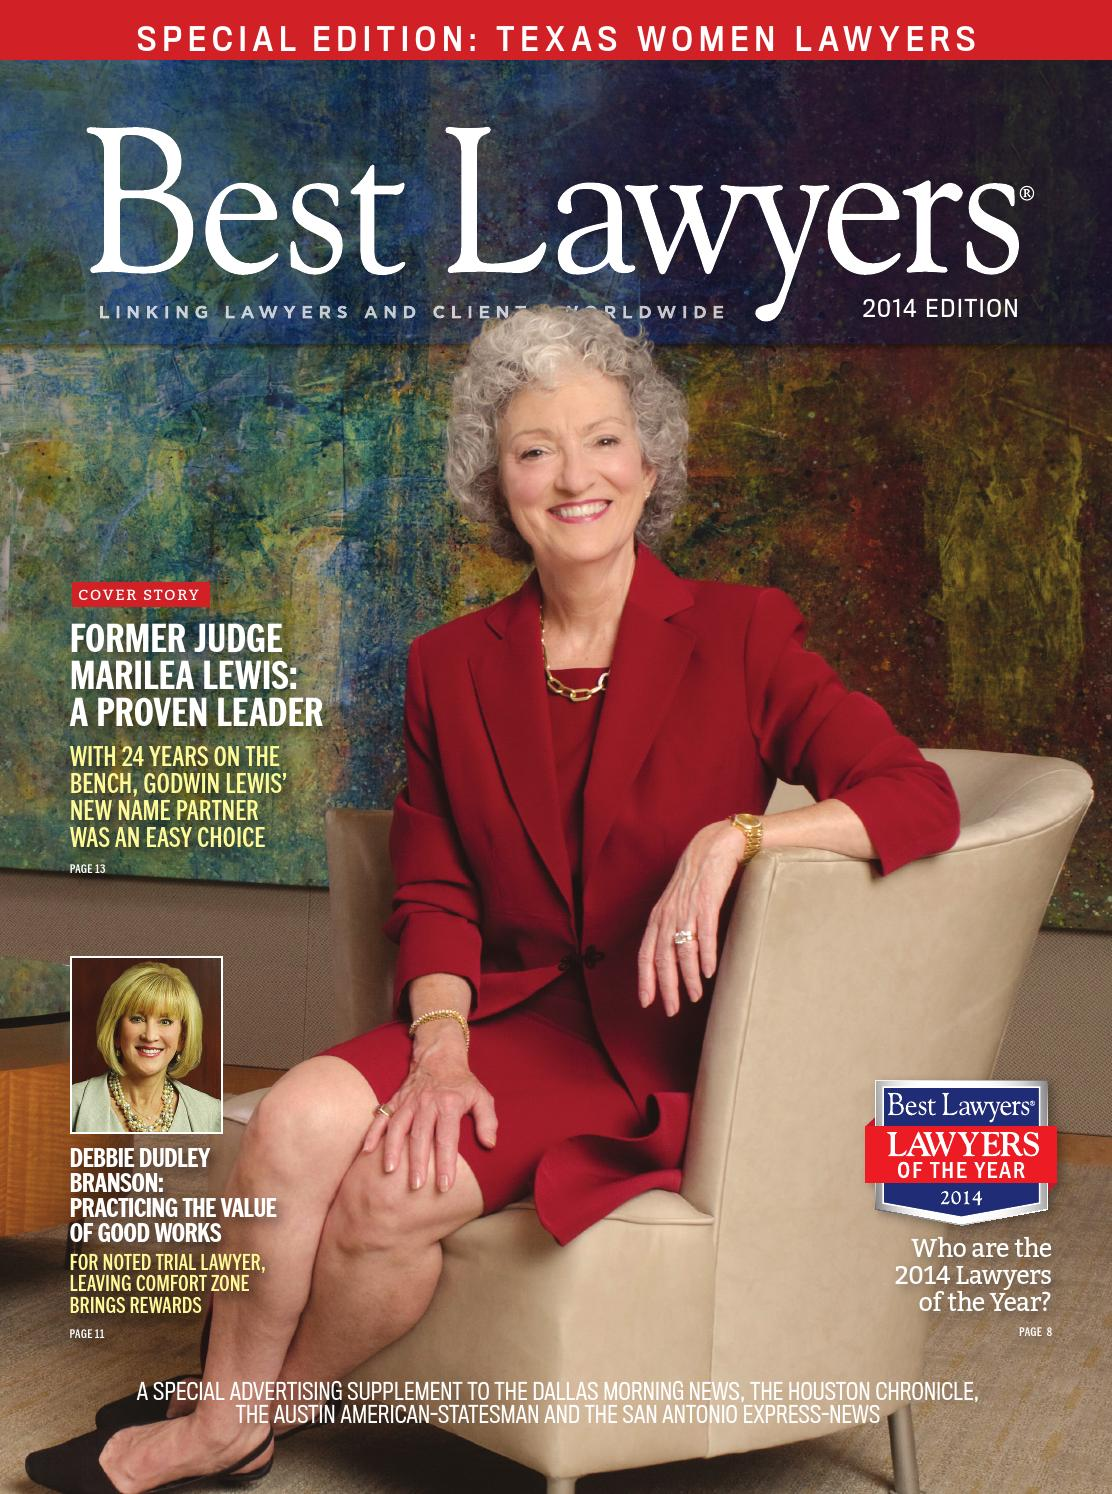 Texas Women Lawyers by Best Lawyers - issuu